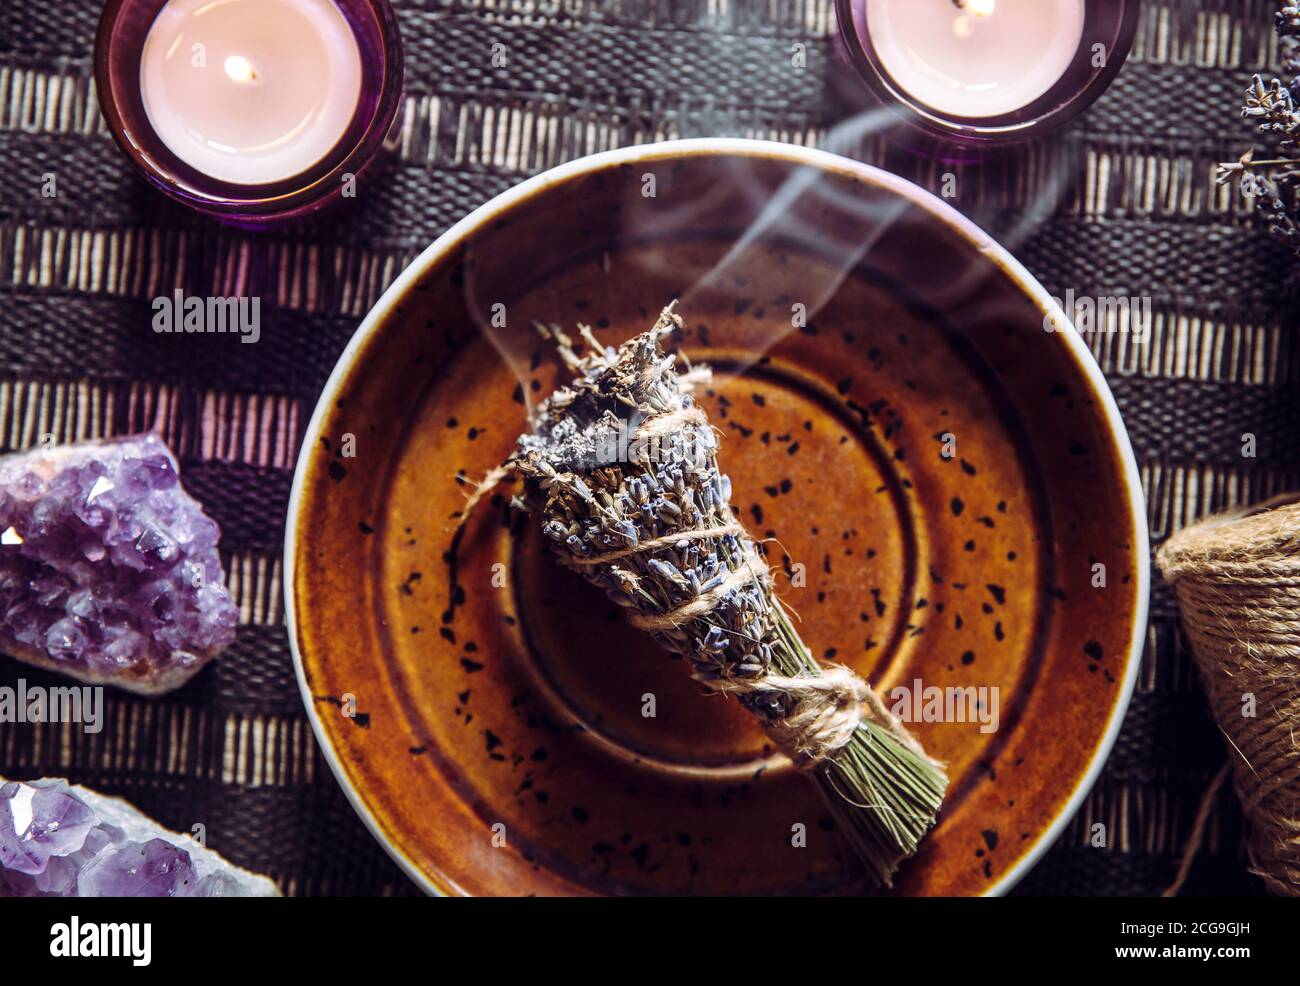 Homemade herbal lavender (lavendula) smudge stick smoldering on brown plate with candles and amethyst crystal clusters for decoration. Spiritual home Stock Photo